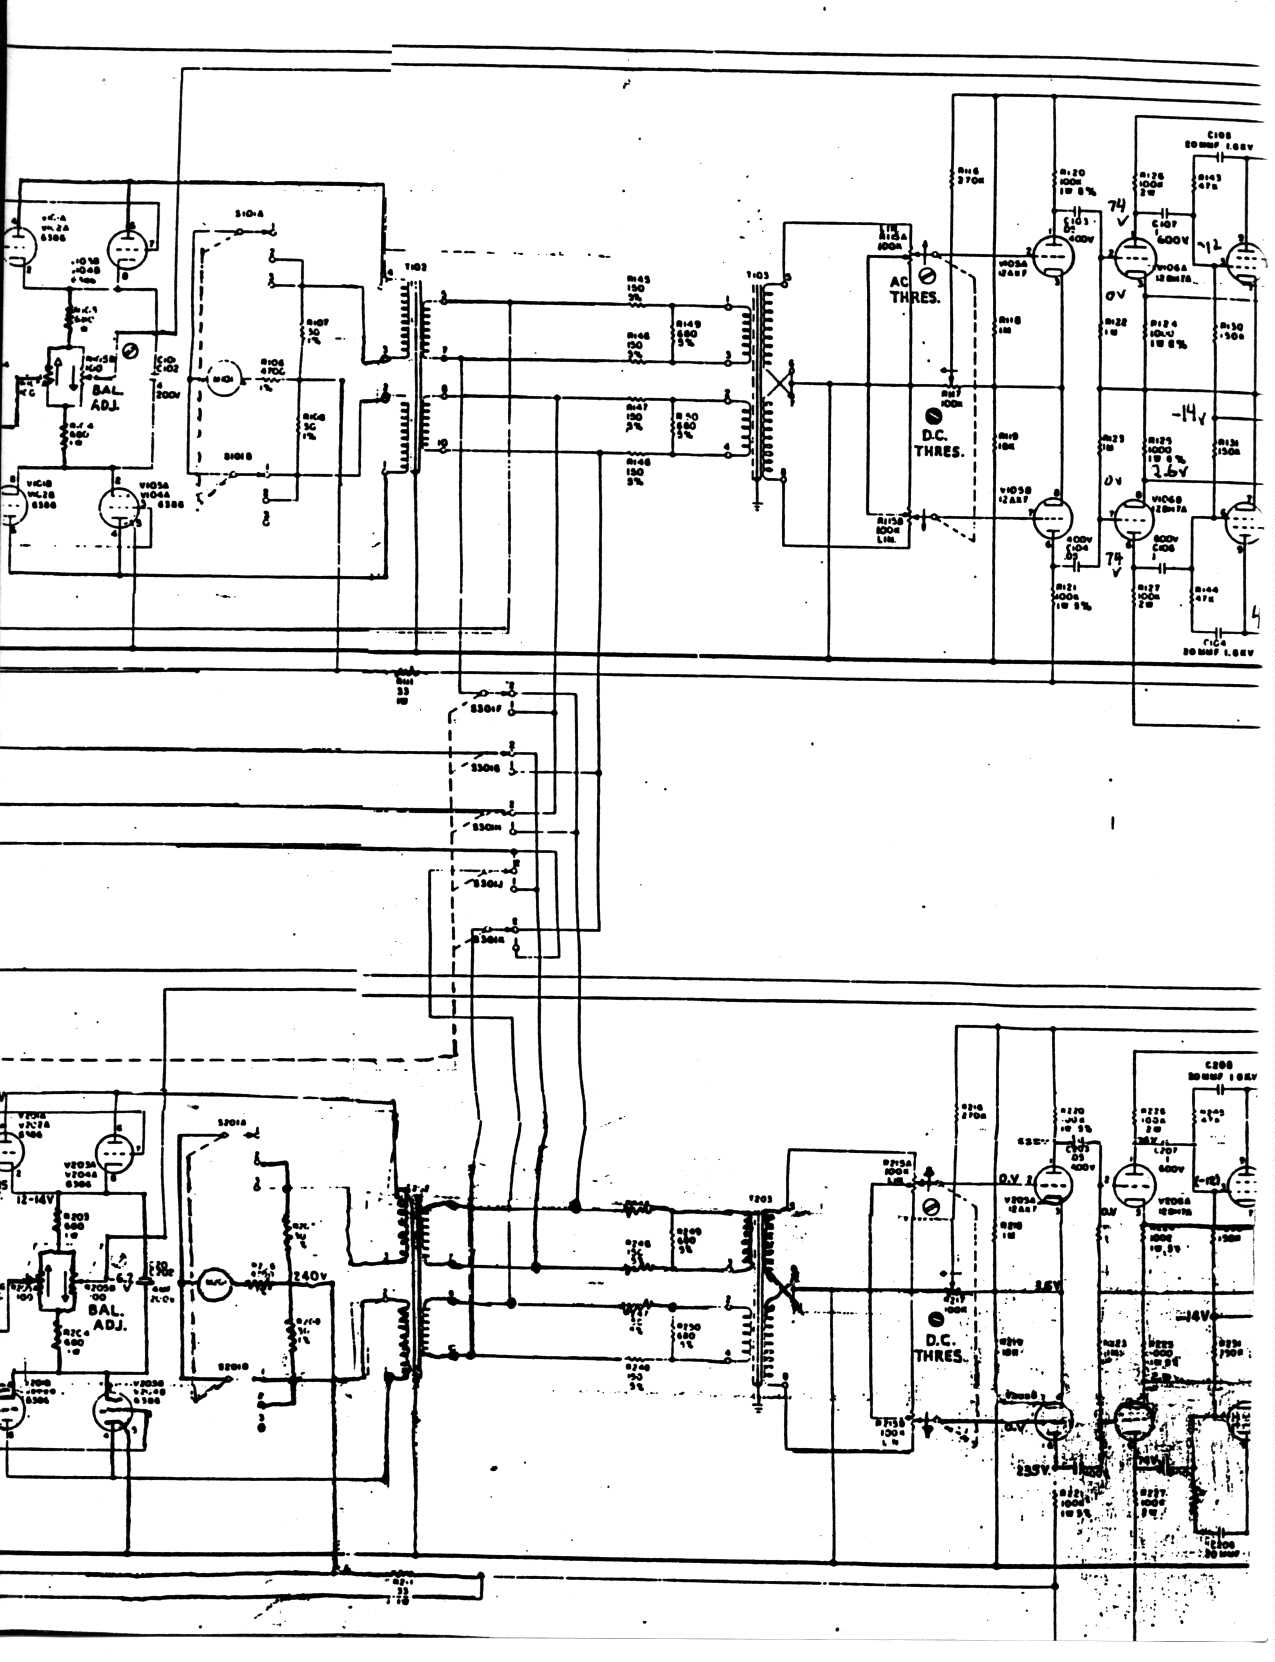 hight resolution of emt 140 stereo driver output amplifier fairchild model 670 stereo limiter compressor schematic page 1